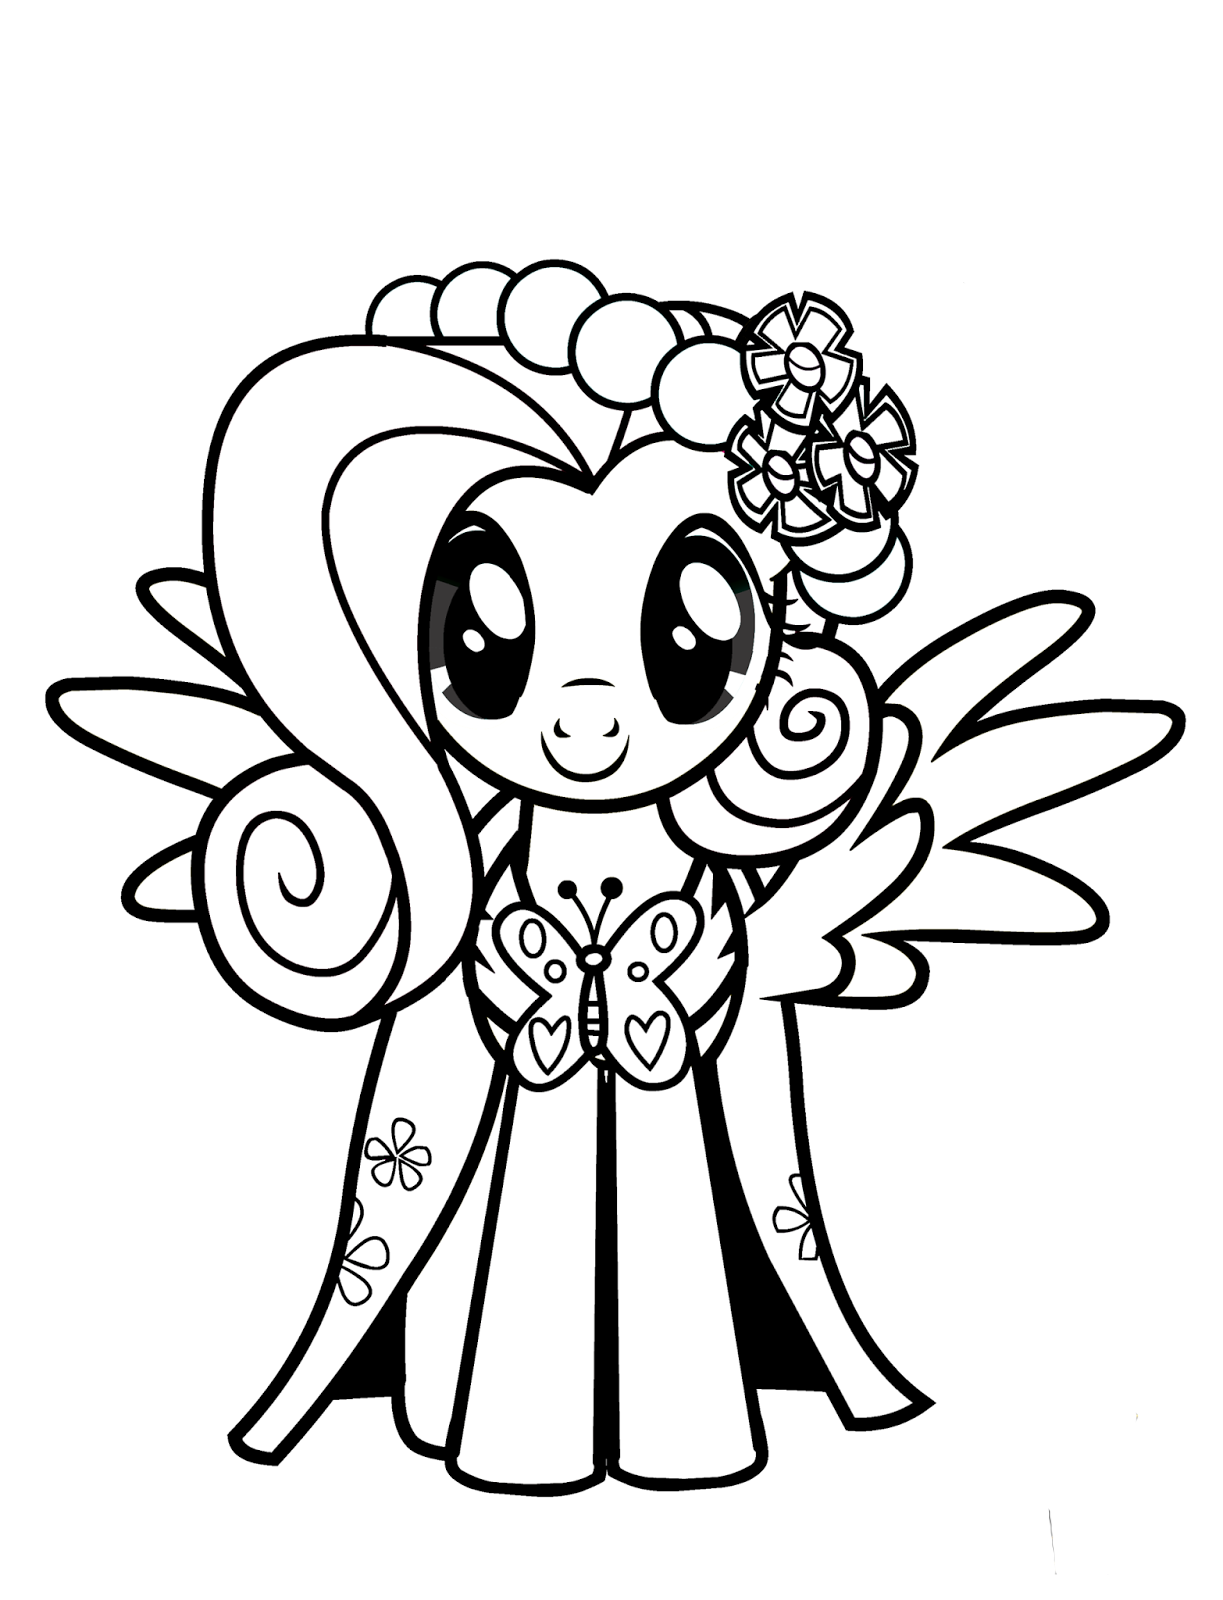 my little pony coloring sheets to print fluttershy coloring pages best coloring pages for kids my to coloring sheets print pony little